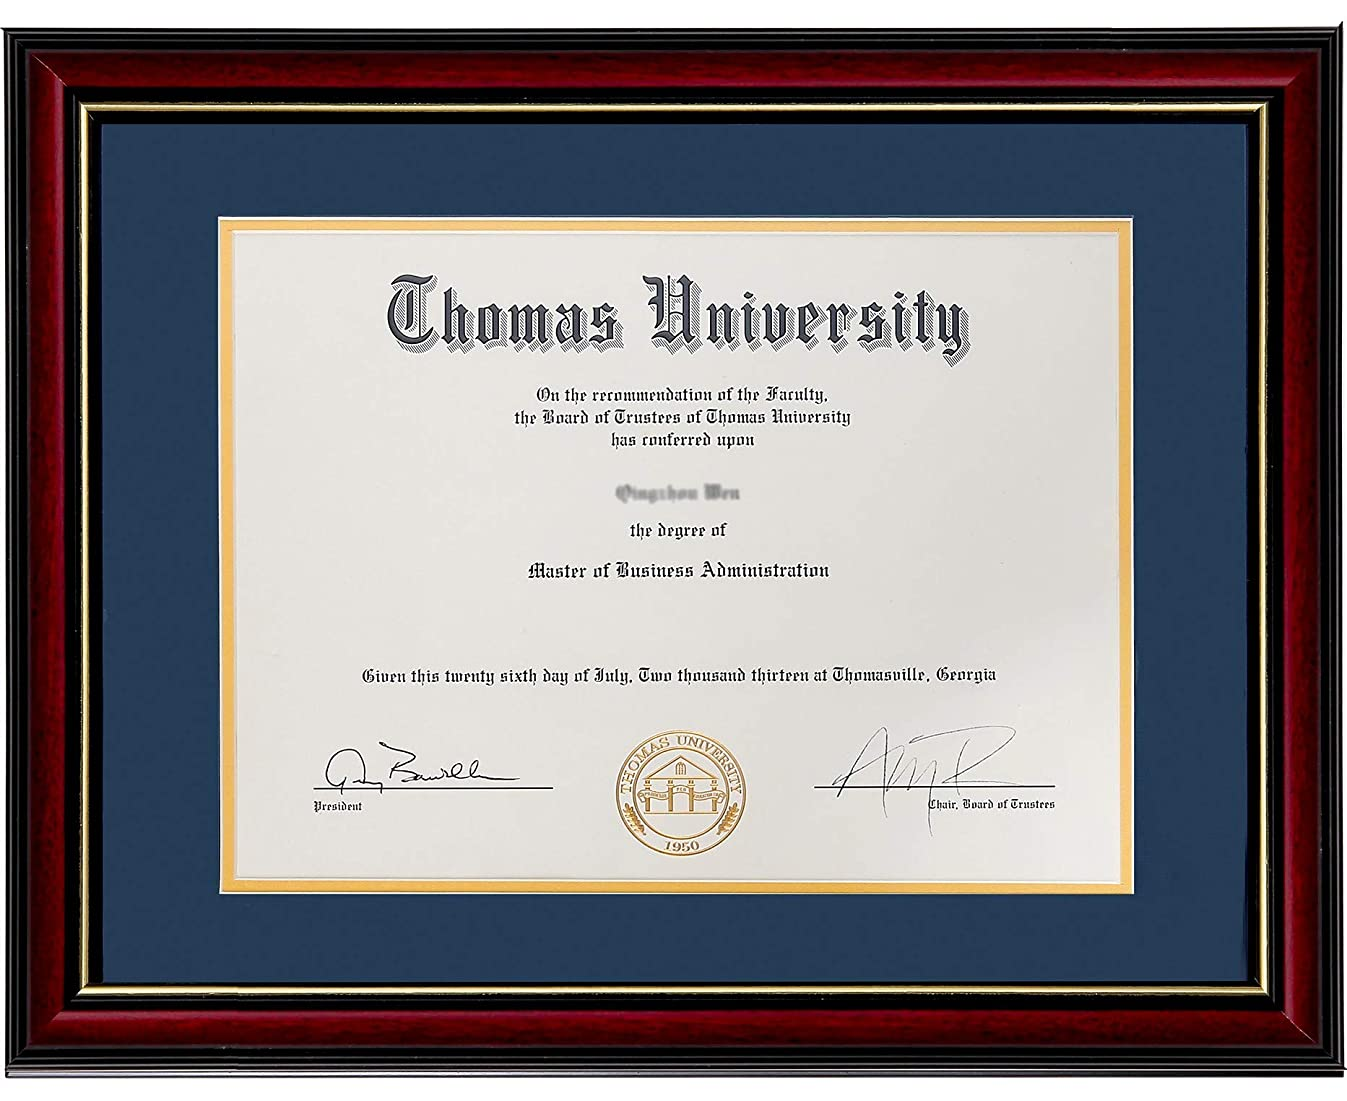 Flagship Diploma Frame Real Wood & Glass Golden Rim Sized 8.5x11 Inch with Mat and 11x14 Inch Without Mat for Documents Certificates (Double Mat, Navy Blue Mat with Golden Rim)